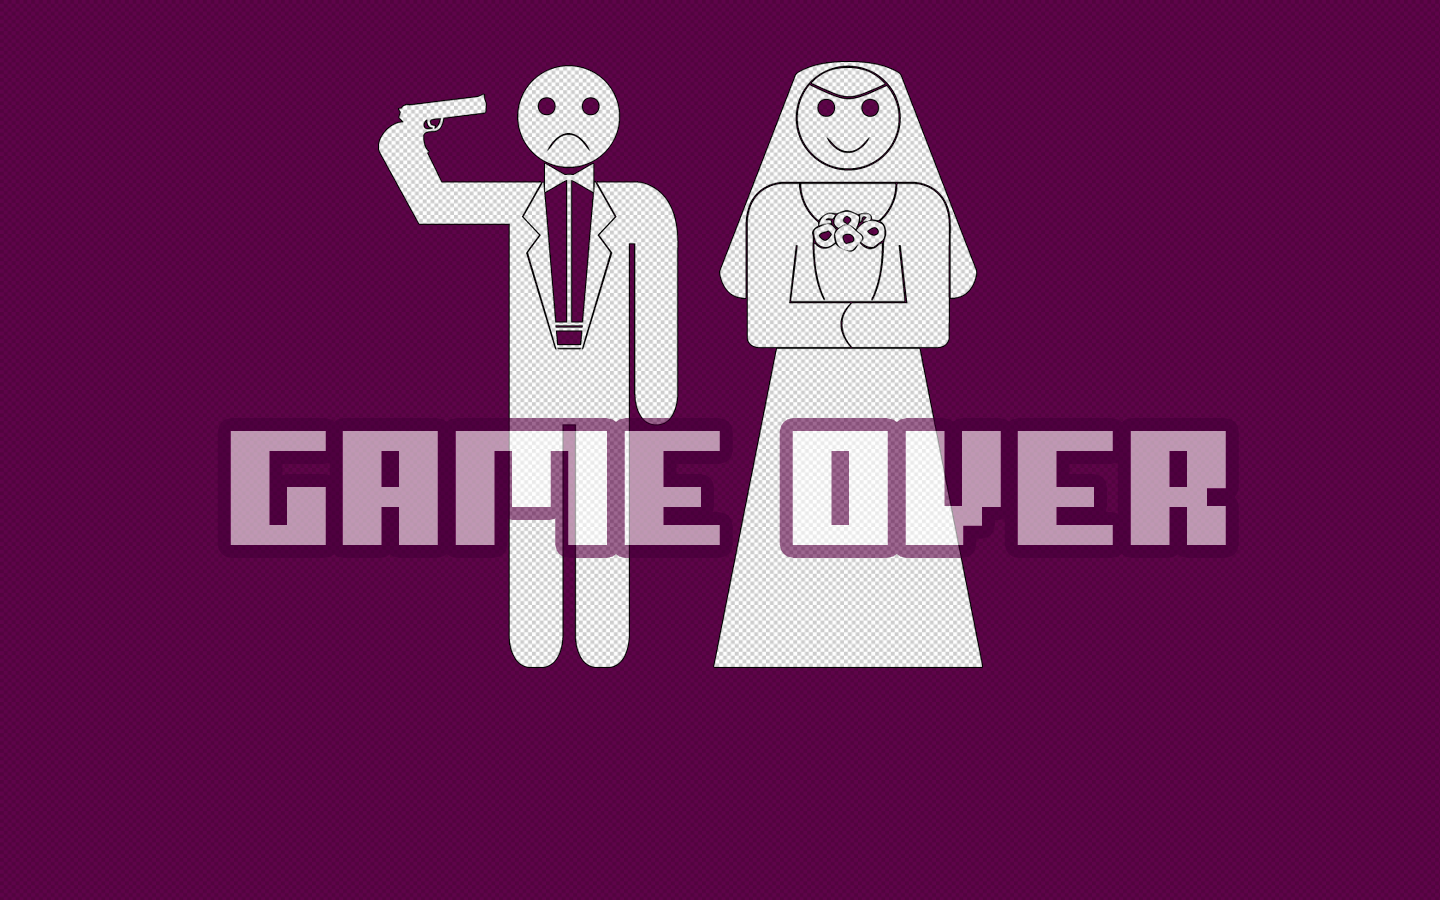 Game Over Wallpaper Images Galleries